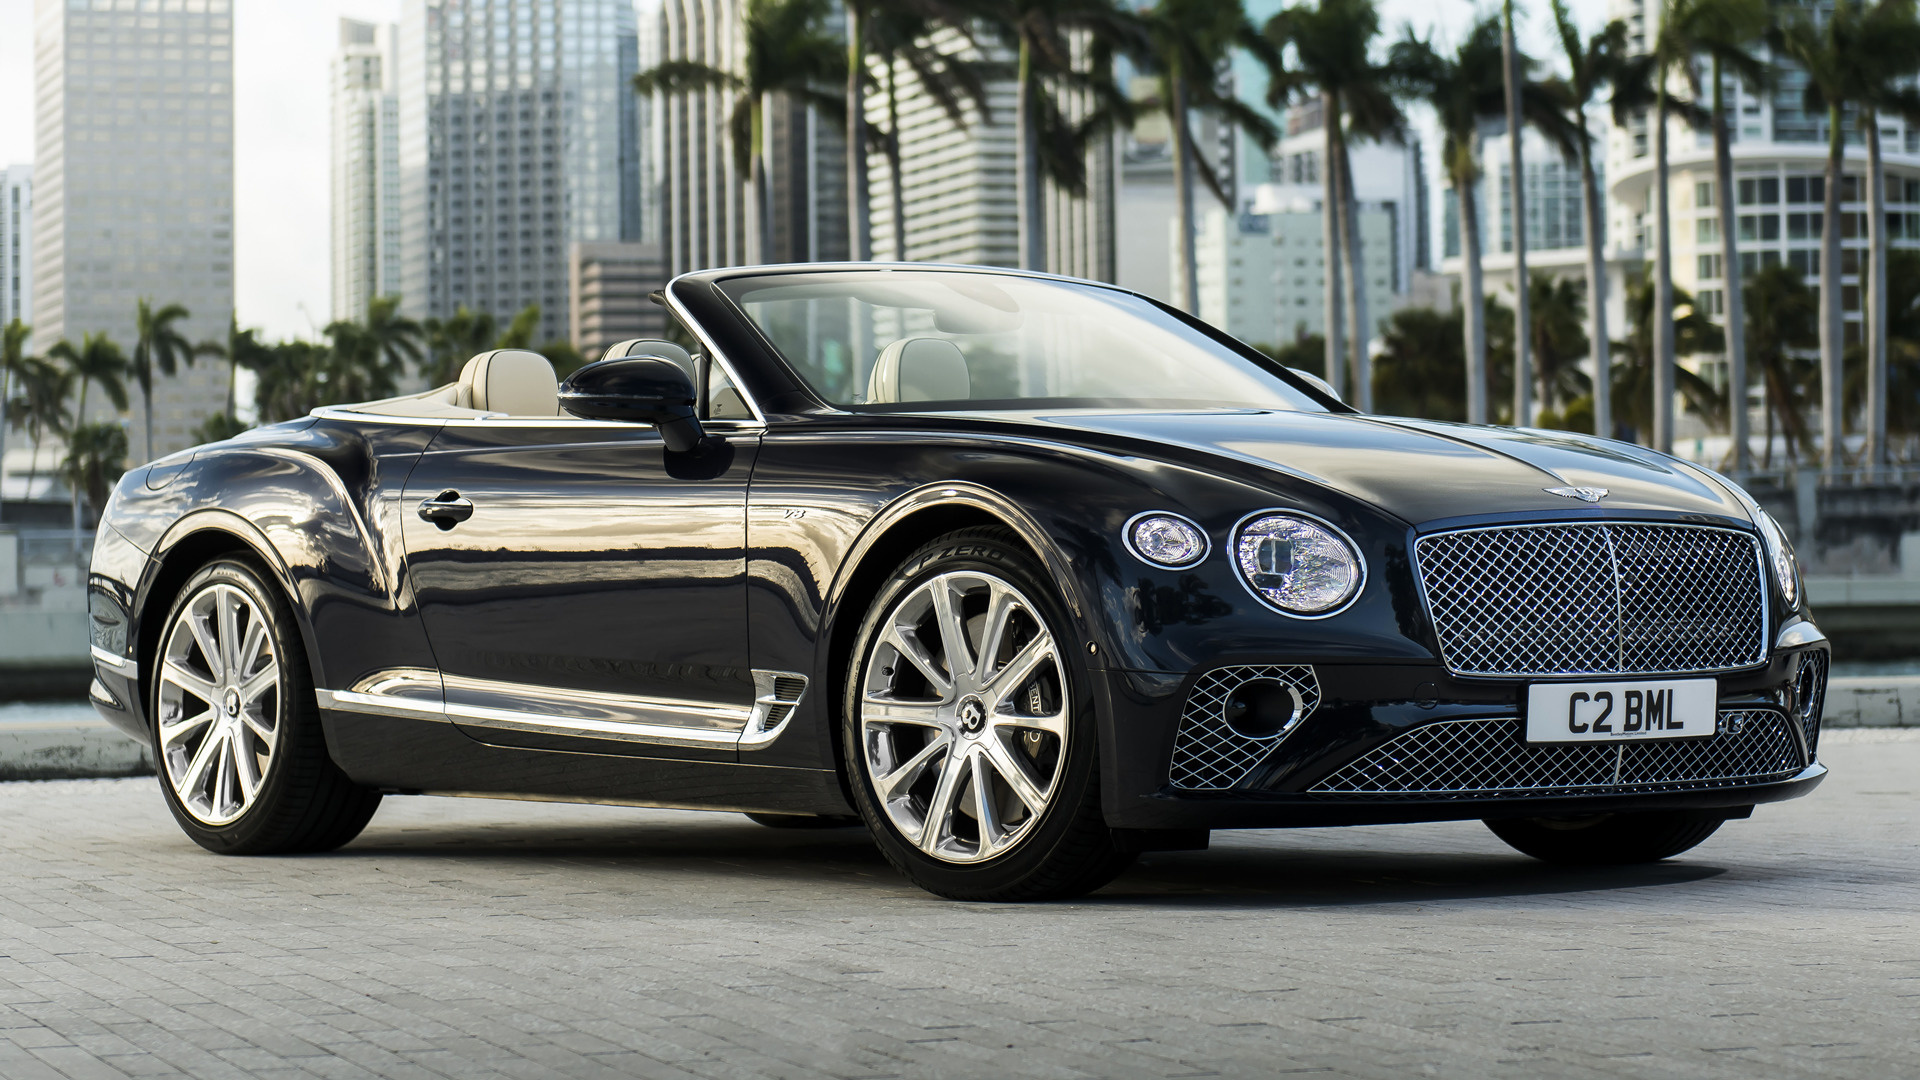 2019 Bentley Continental Gt V8 Convertible Wallpapers